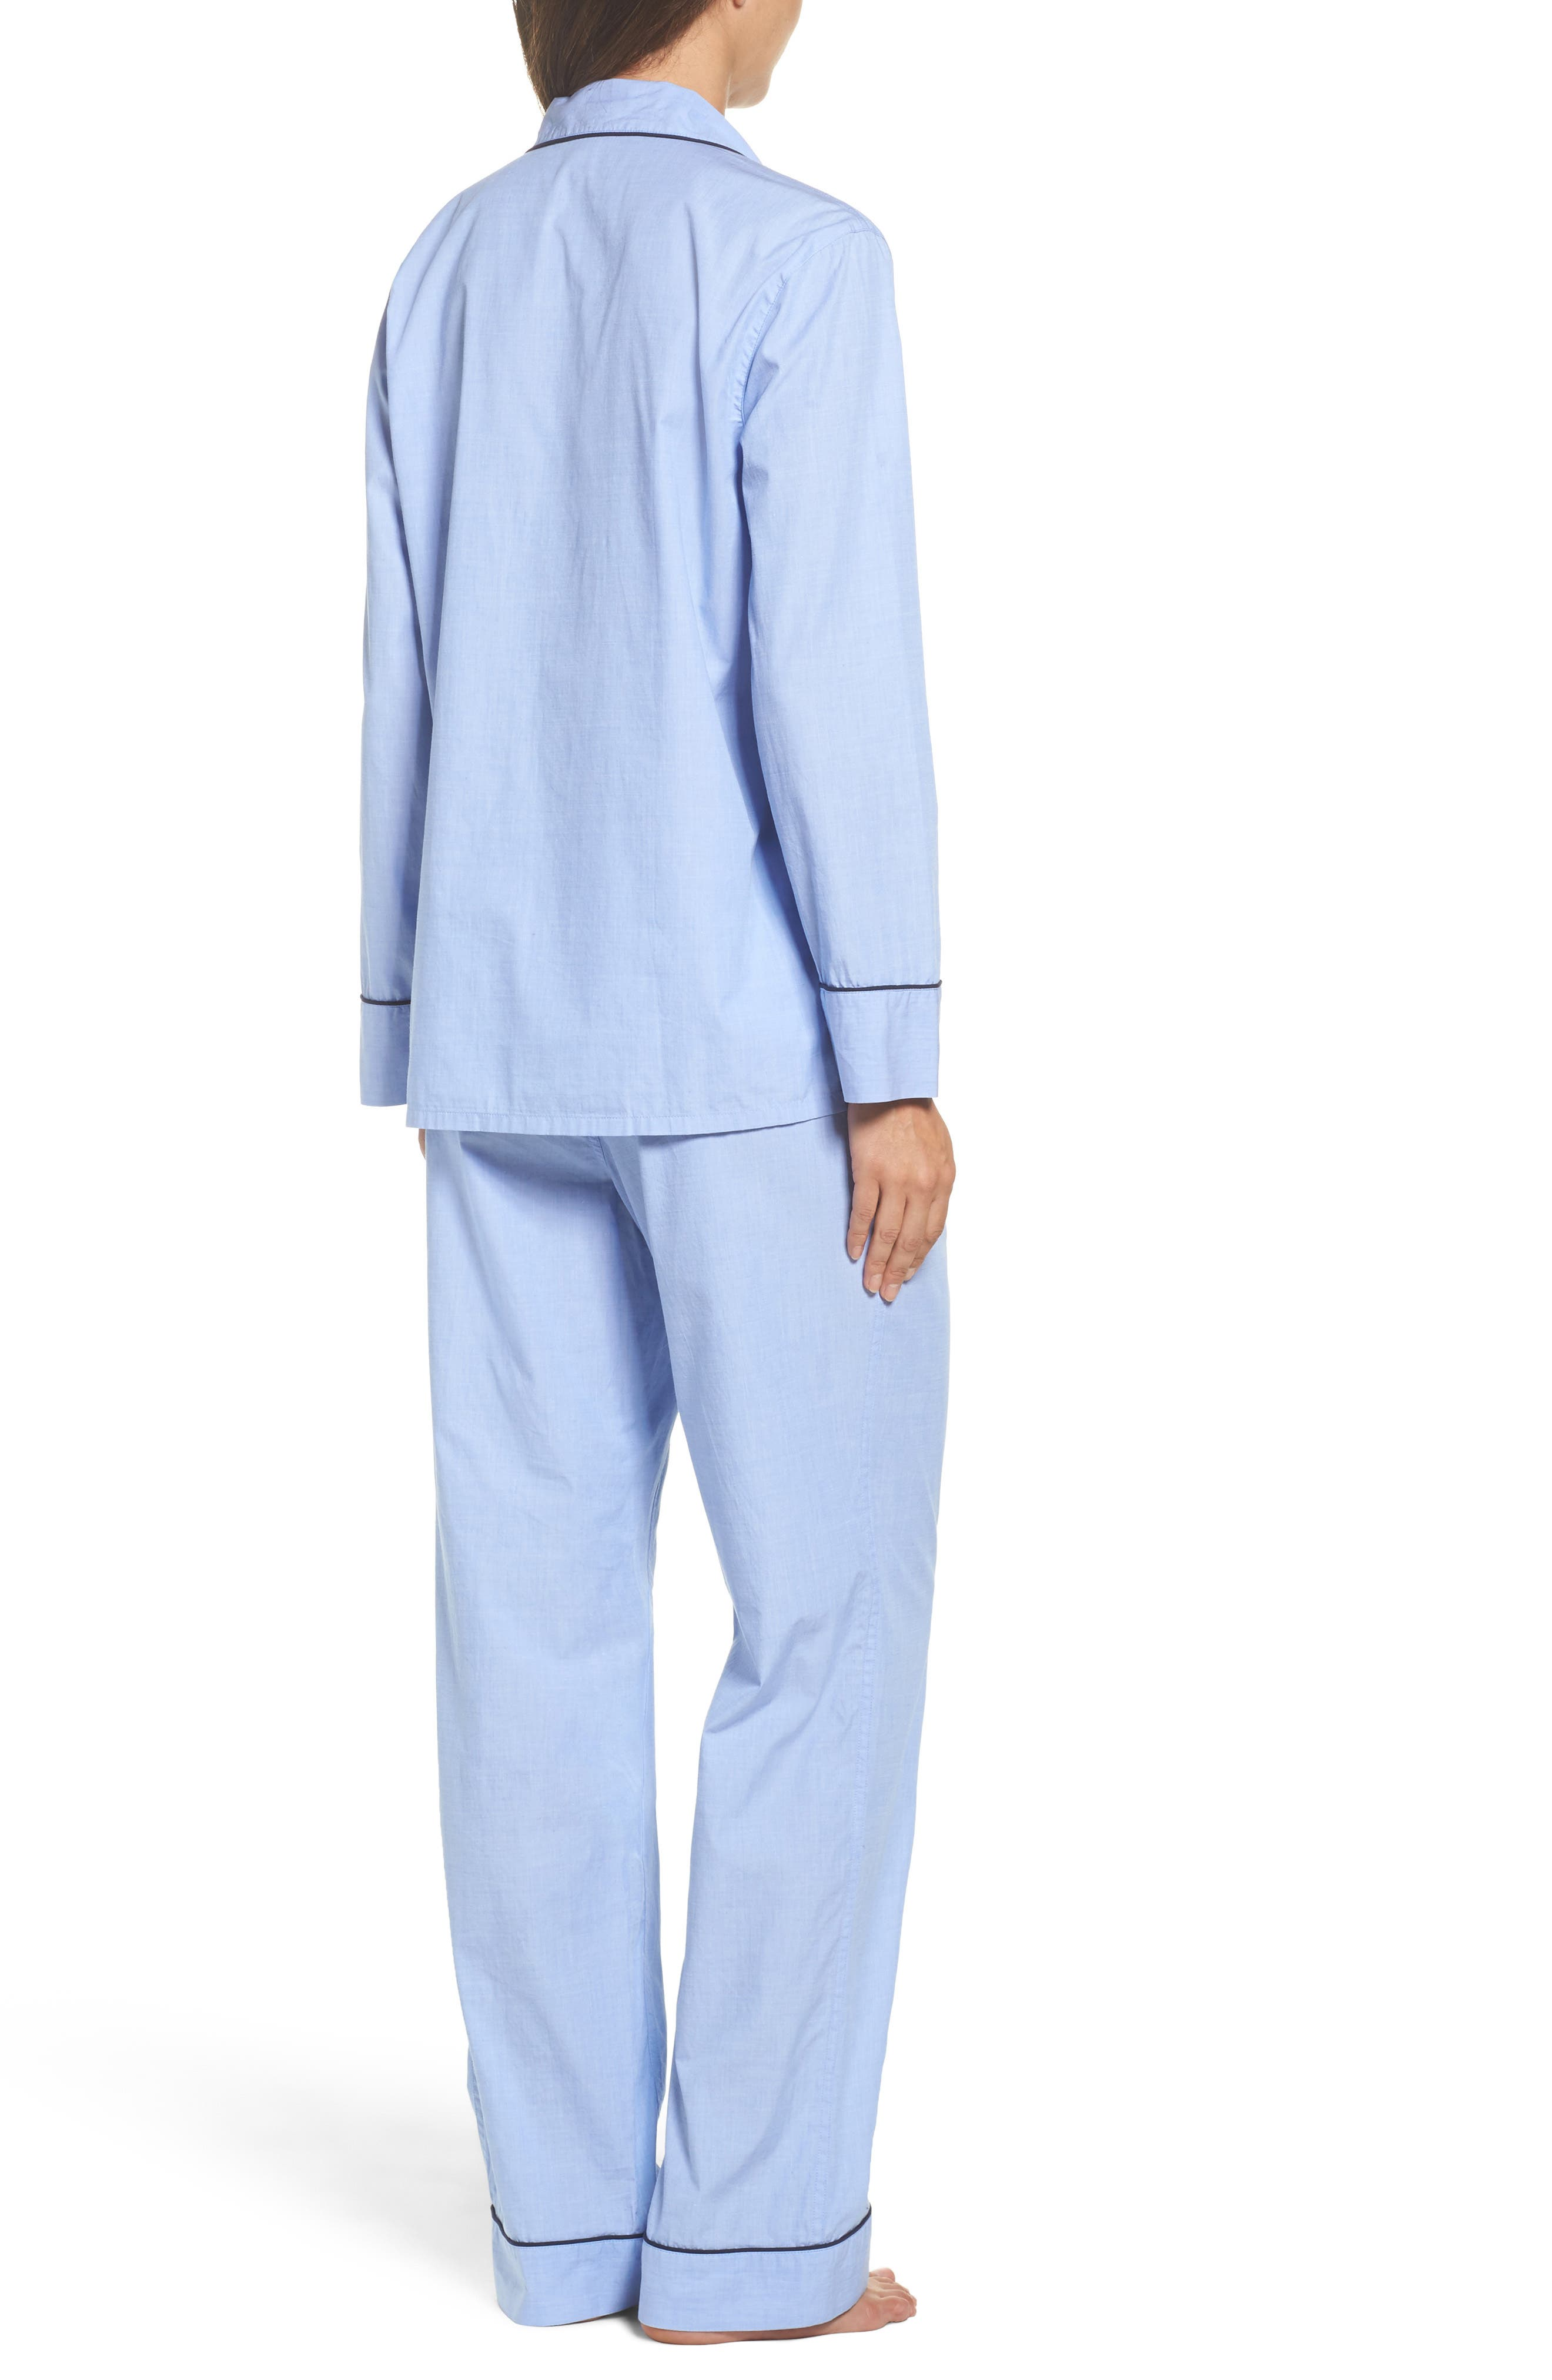 J.Crew Vintage Cotton Pajamas,                             Alternate thumbnail 2, color,                             Hydrangea